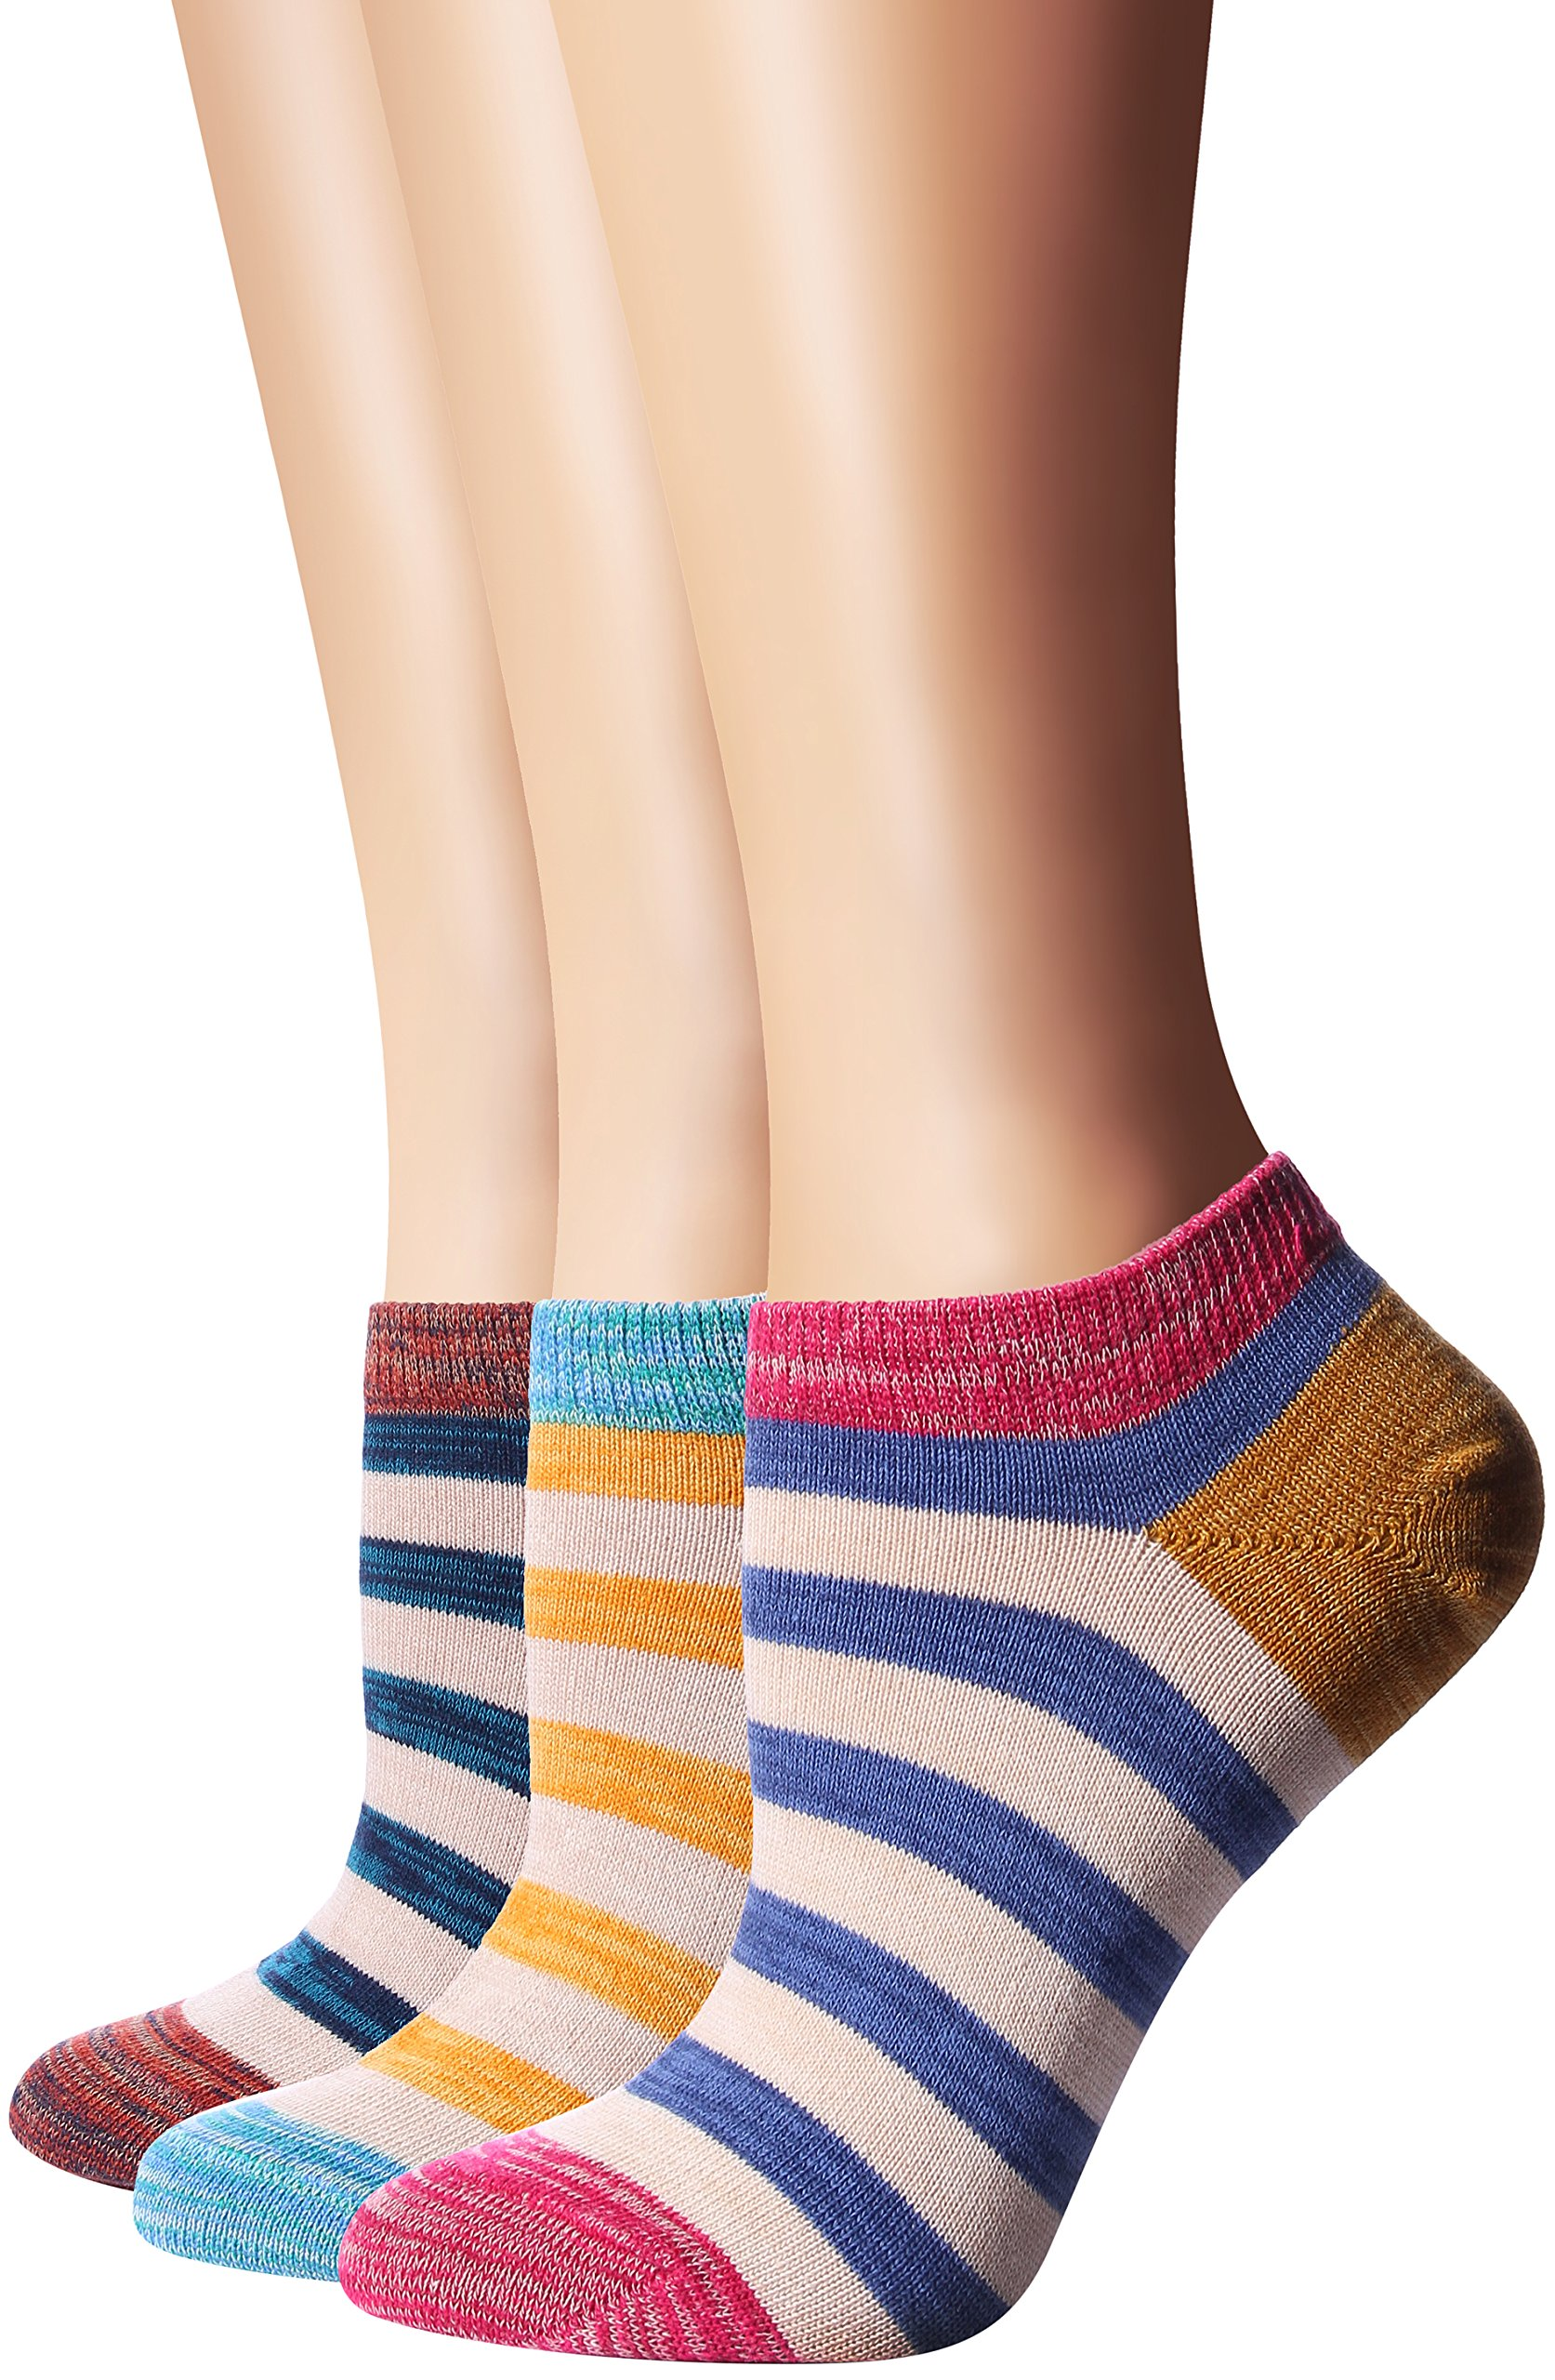 Flora&Fred Women's 3 Pair Pack Vintage Style Colorful Stripe Cotton No Show Socks